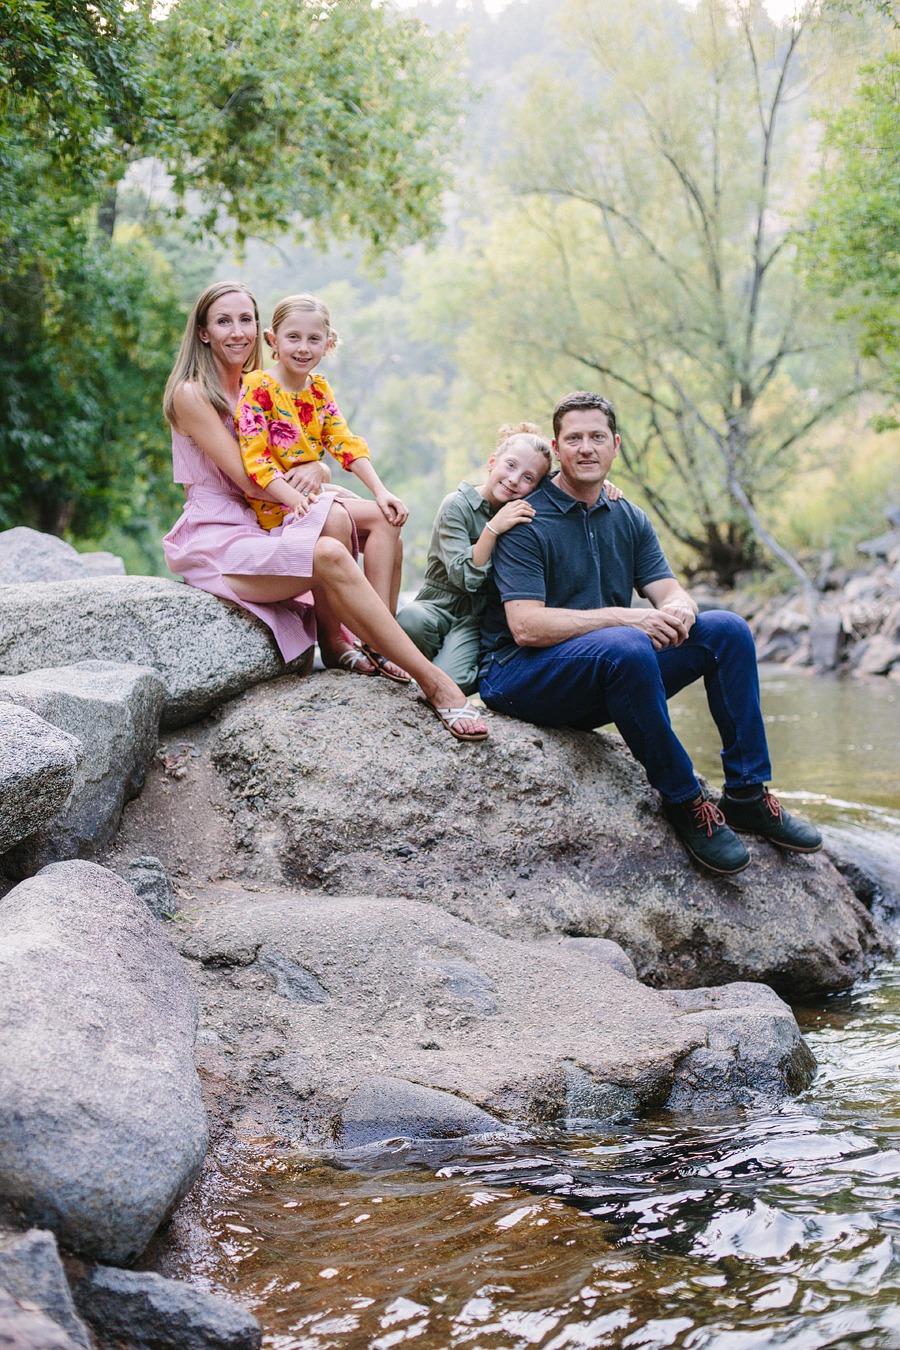 mckeefamily_aug2018.029.jpg